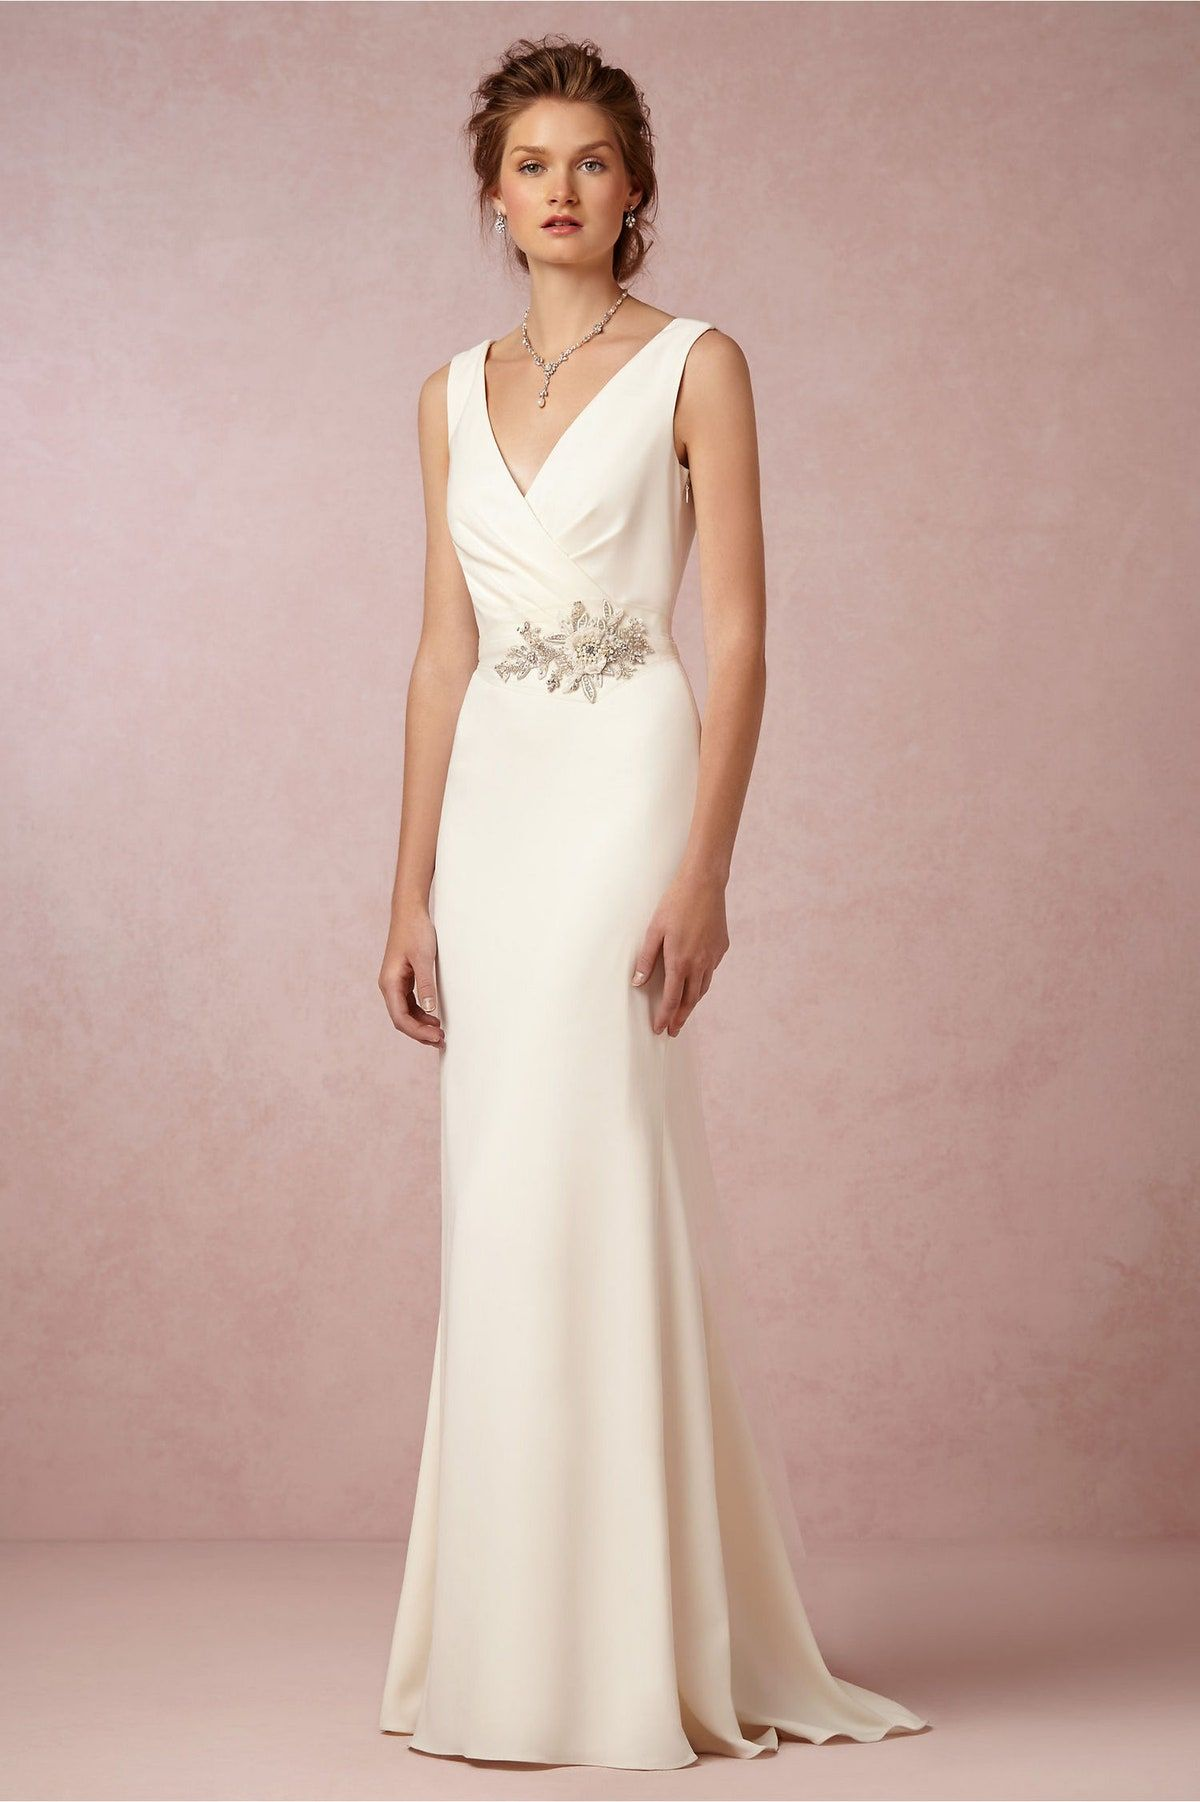 Beach Wedding Dresses Styles For 2015 Glamour In 2020 Jcrew Wedding Dress Sheath Wedding Dress Column Wedding Dress